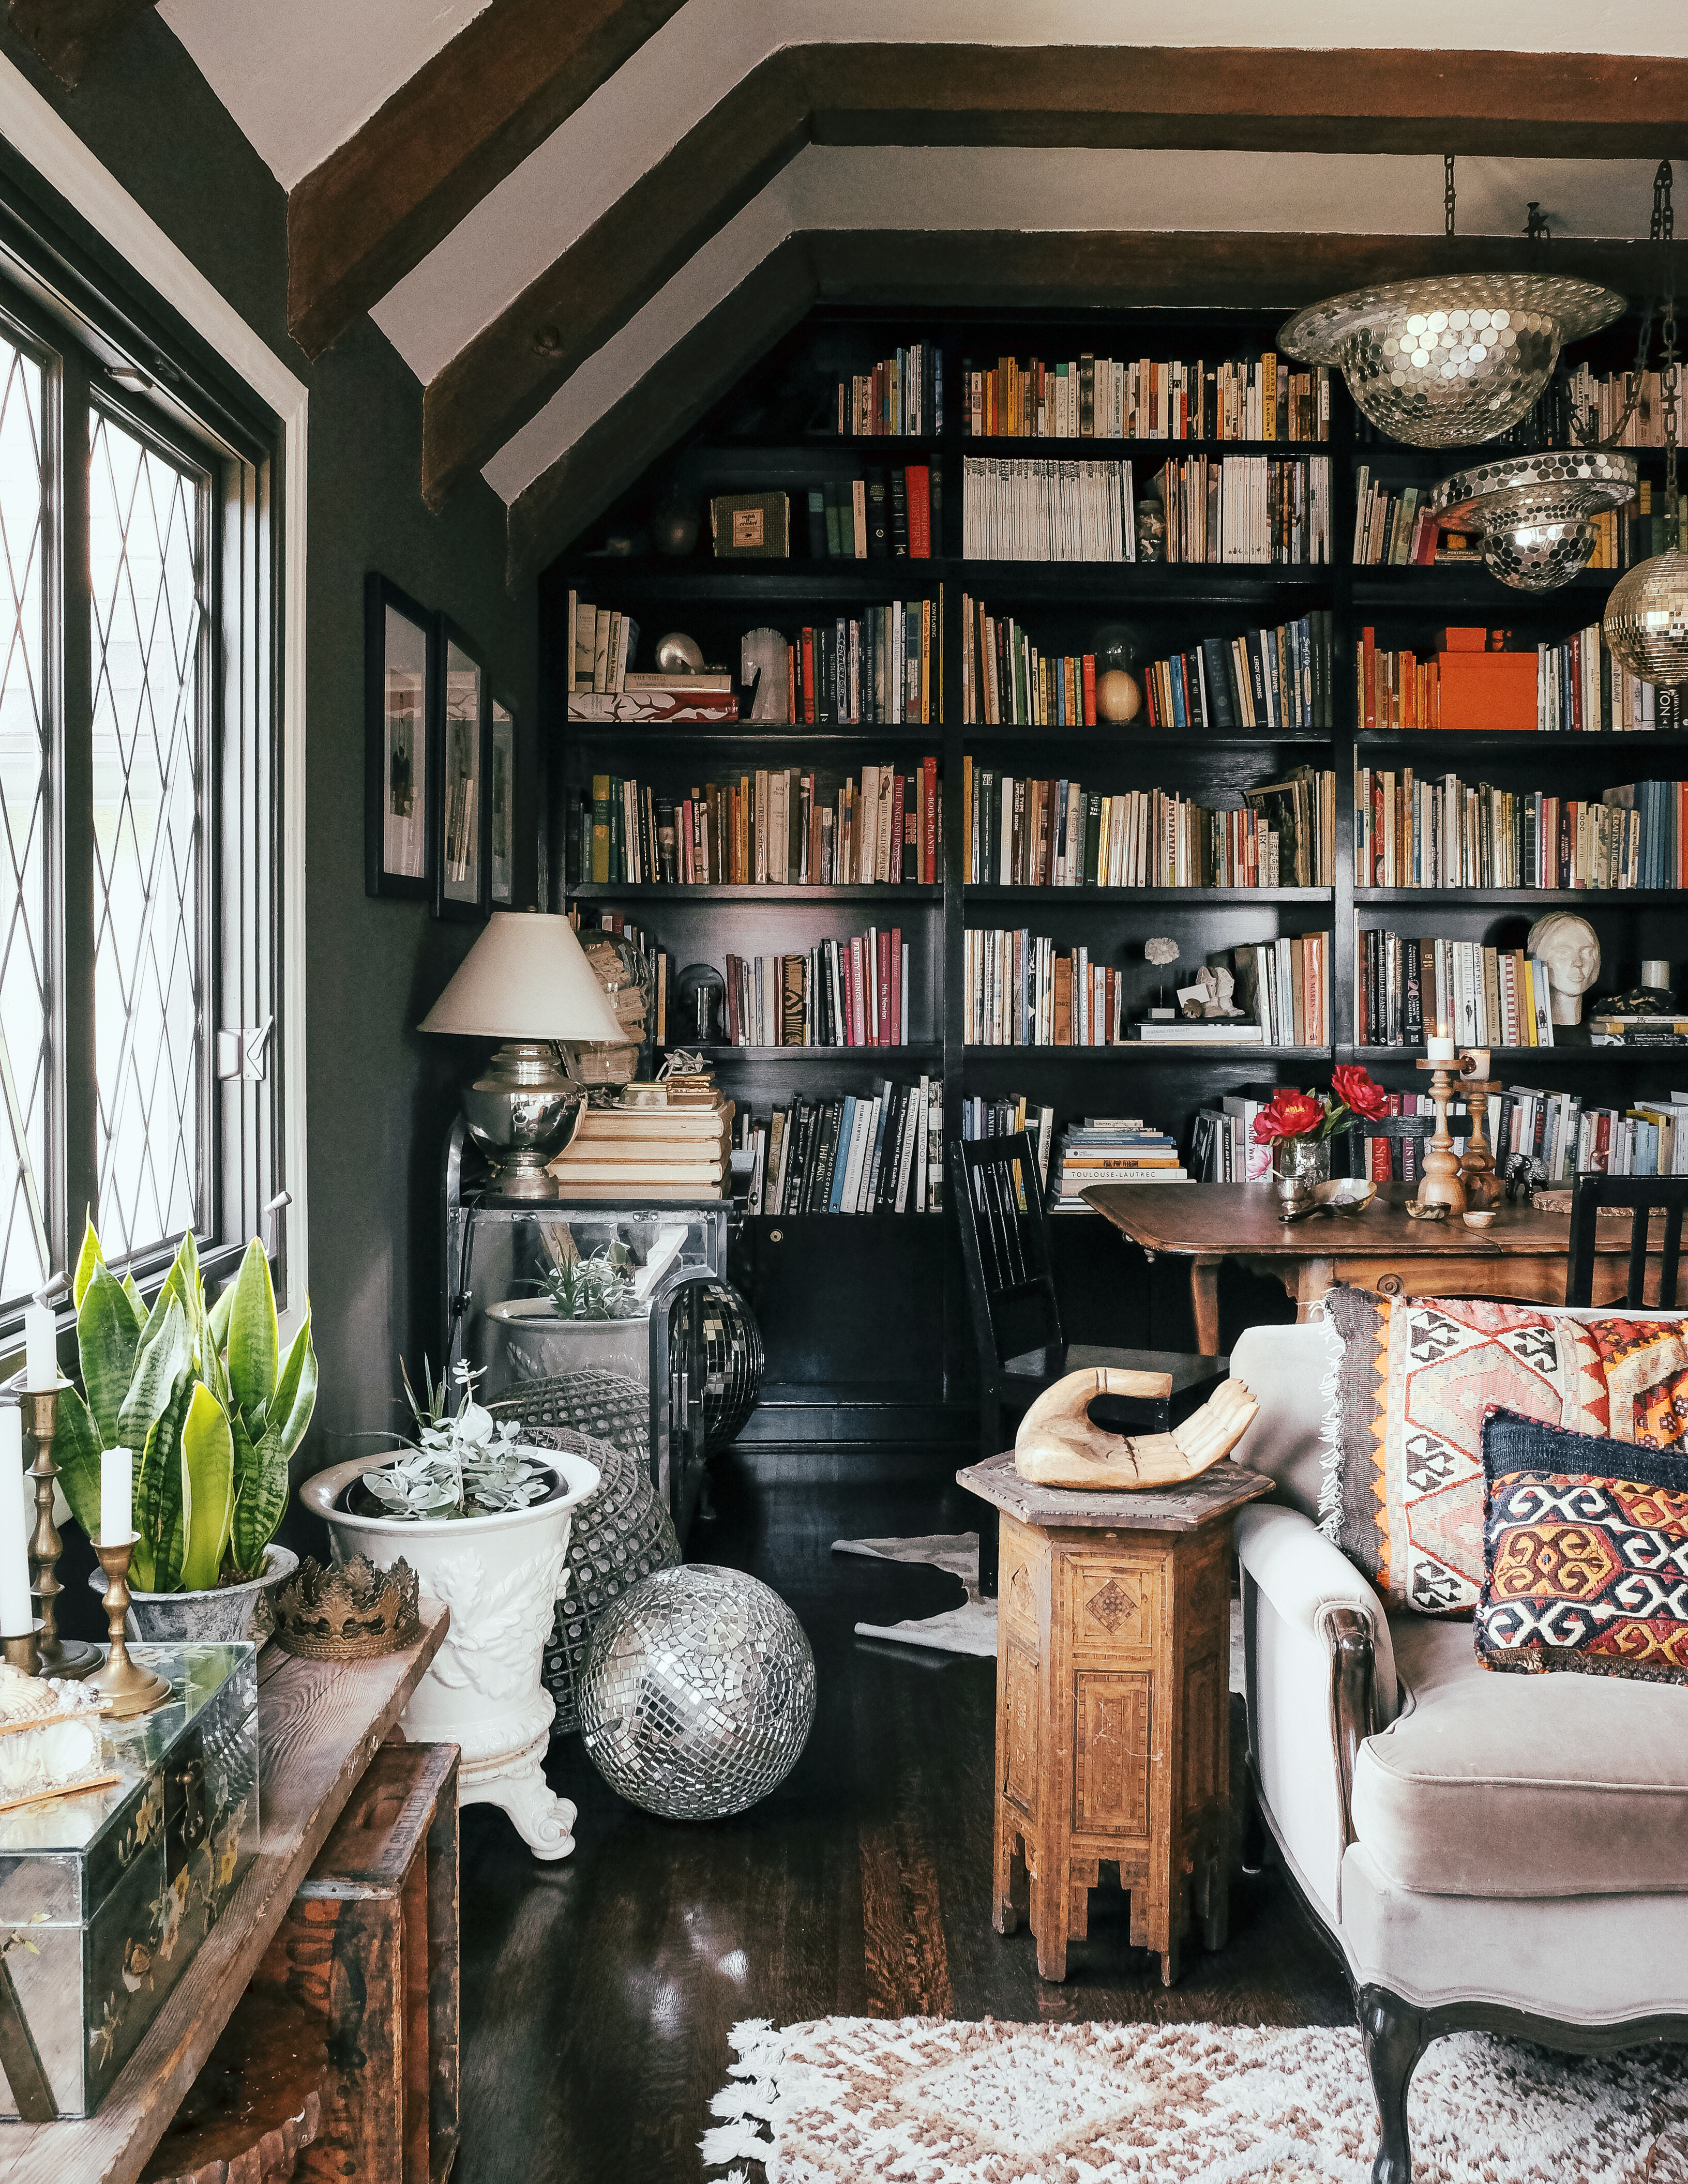 sensational to full pictures design built shelves ideas bookshelf how of small kitchen like in living barn bookcases size decor room decorate for bookcase wall houzz pottery homemade